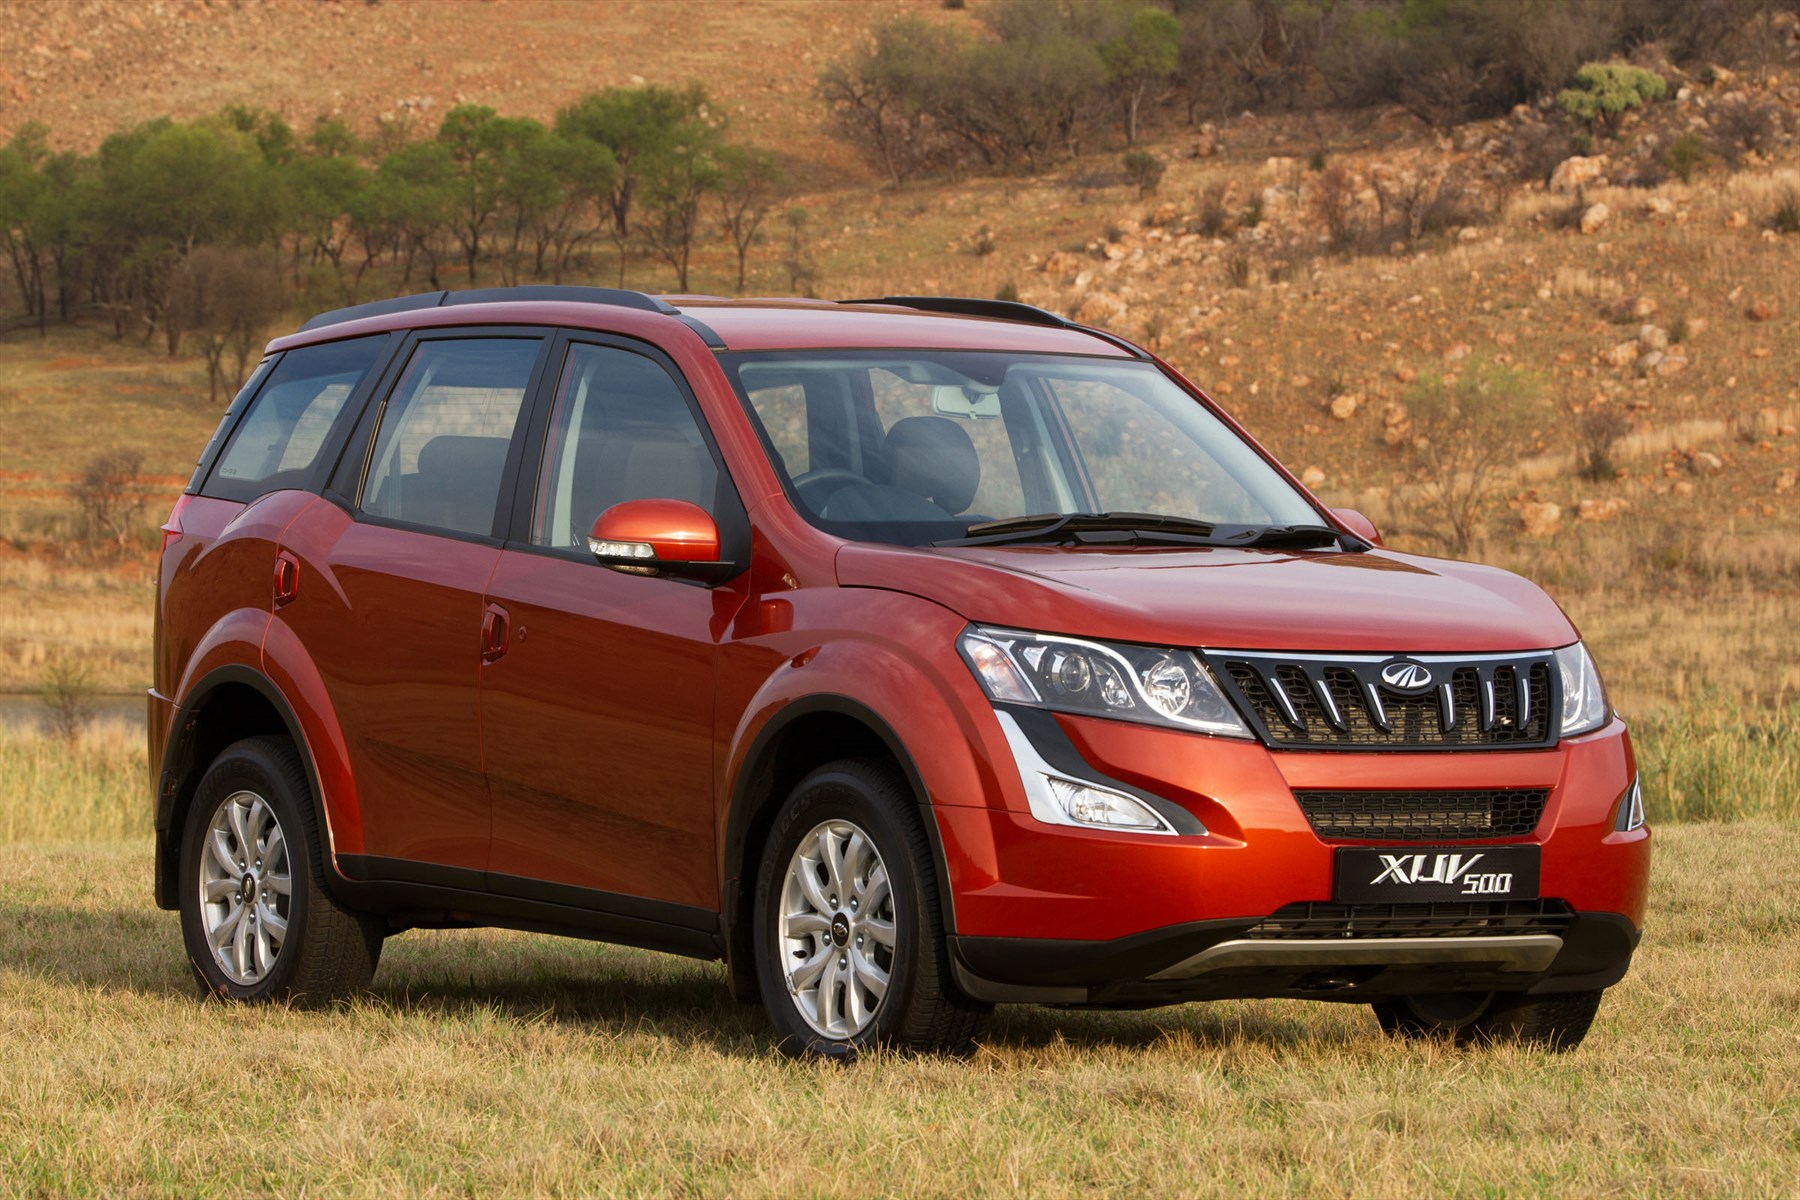 Mahindra XUV500 W8 on review